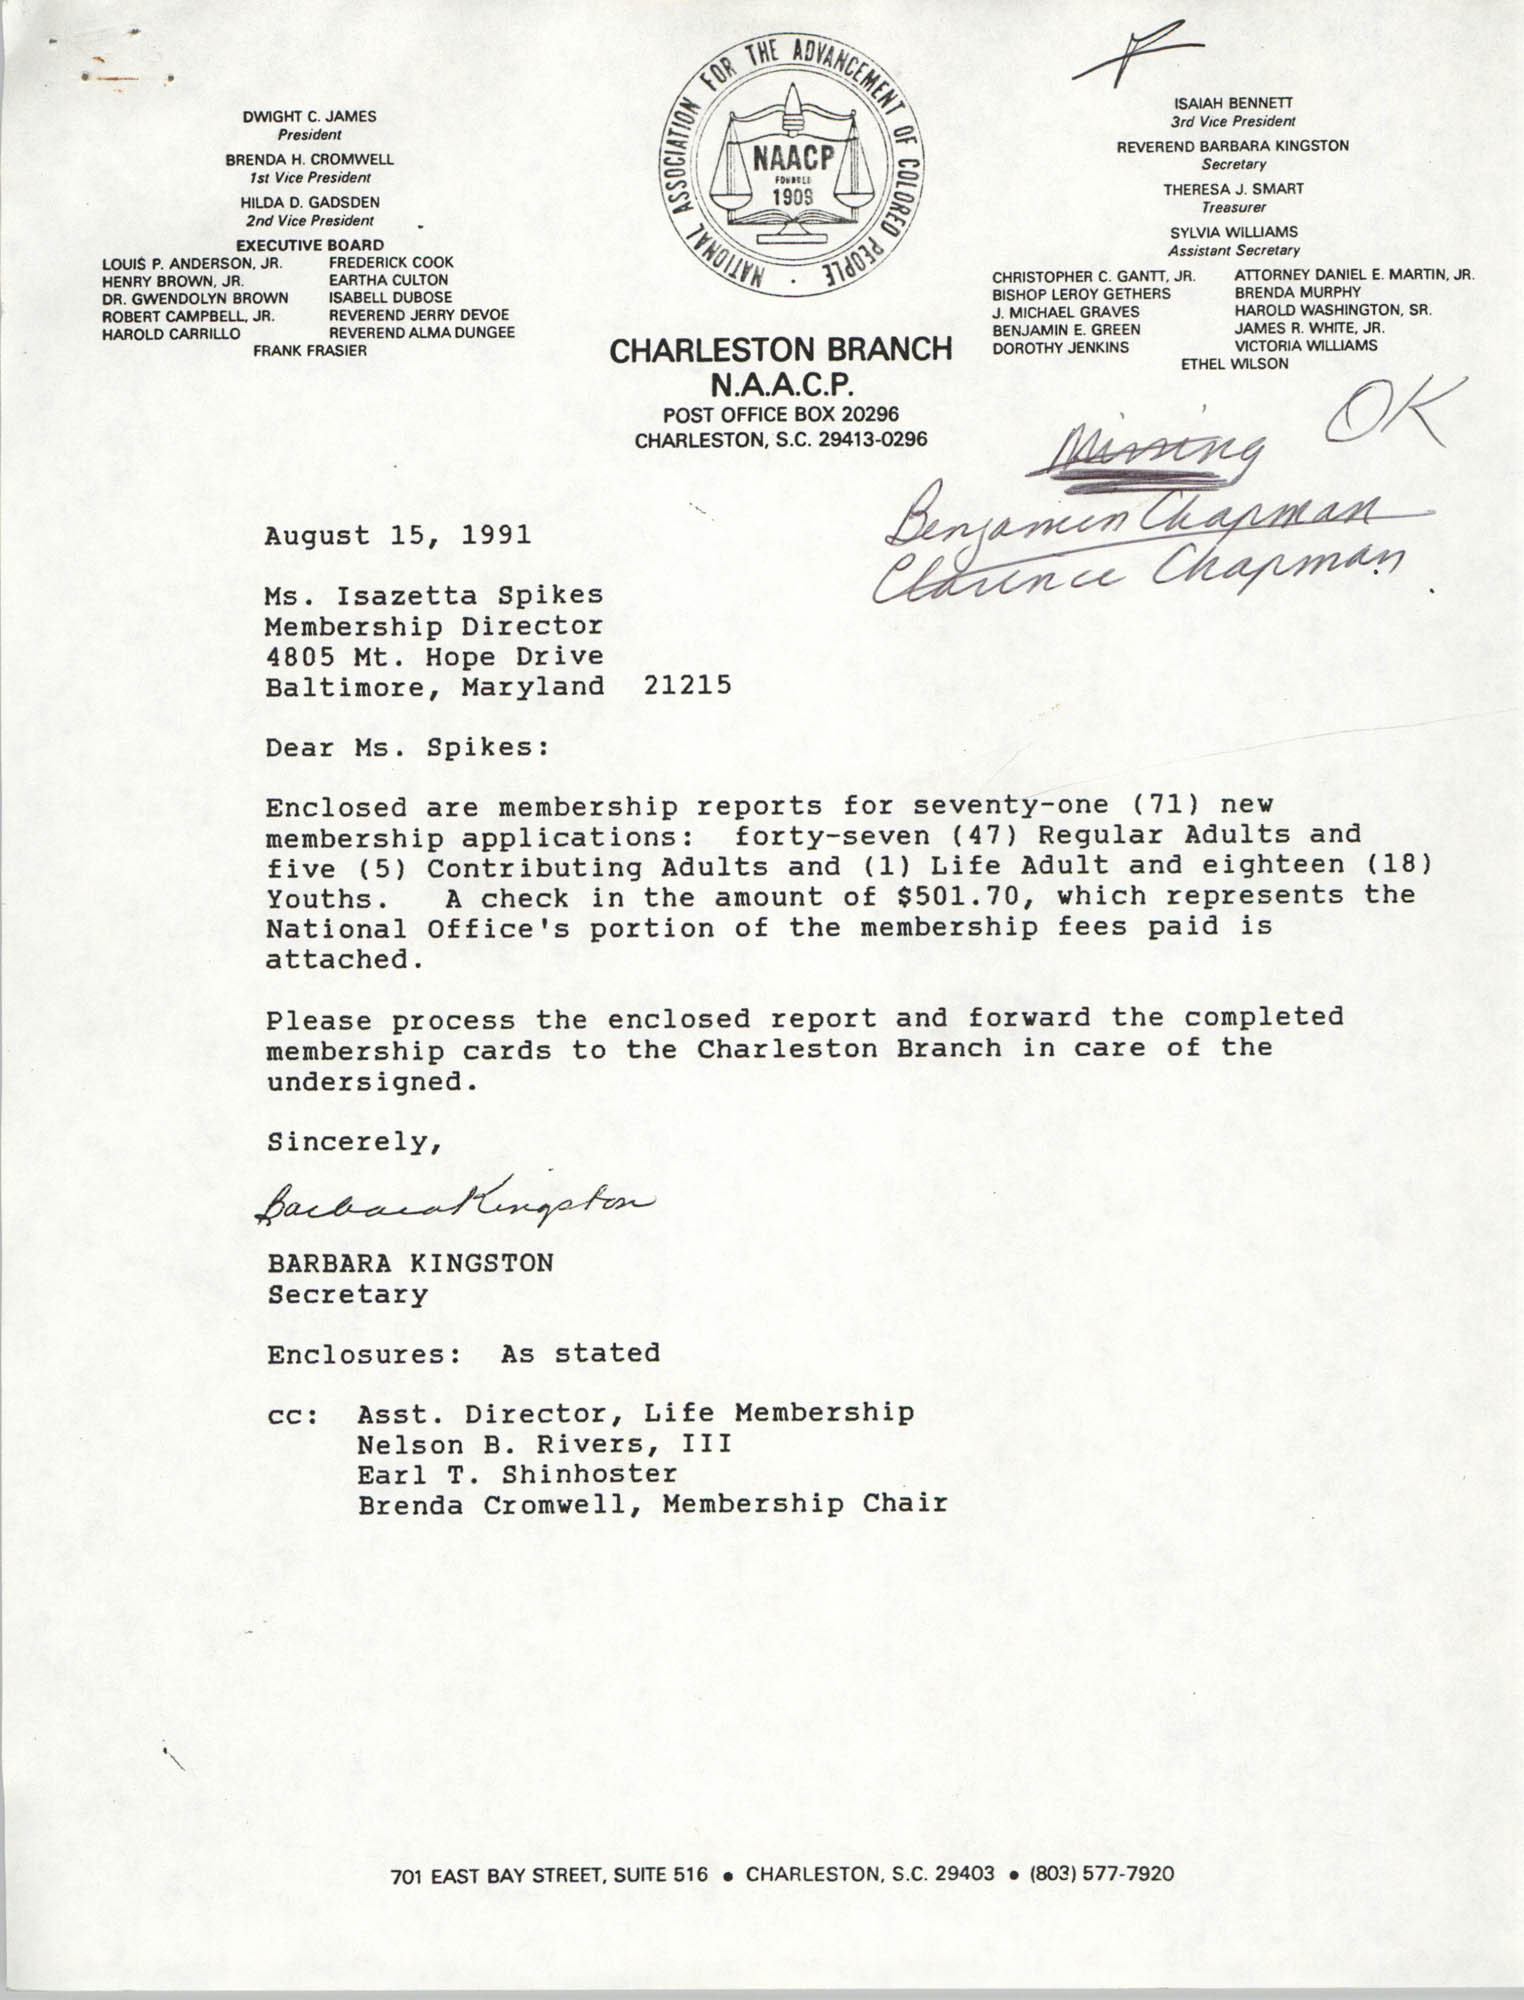 Letter from Barbara Kingston to Isazetta Spikes, August 15, 1991